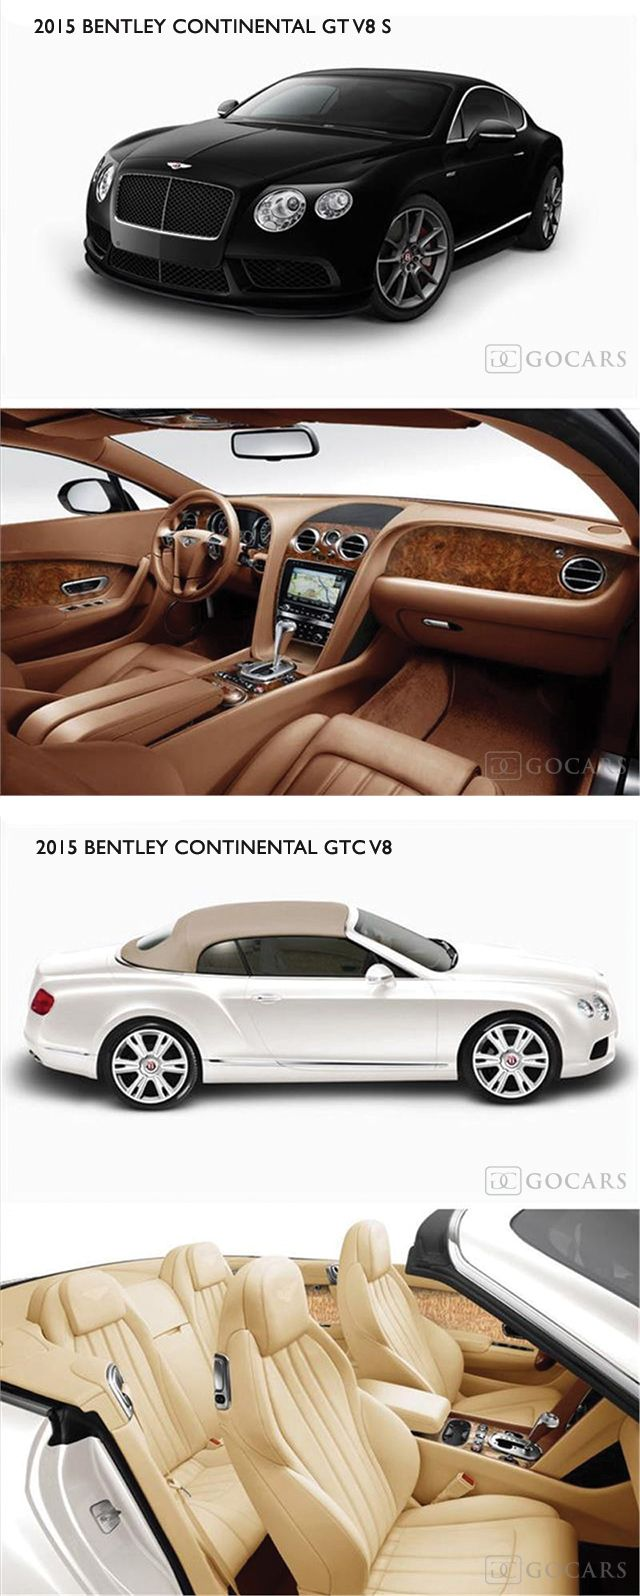 Why, WHY was I born with Champagne taste and a Beer pocketbook?  And, I don't even like beer!  2015 Bentley Continental GT V8 S and 2015 Bentley Continental GTC V8.